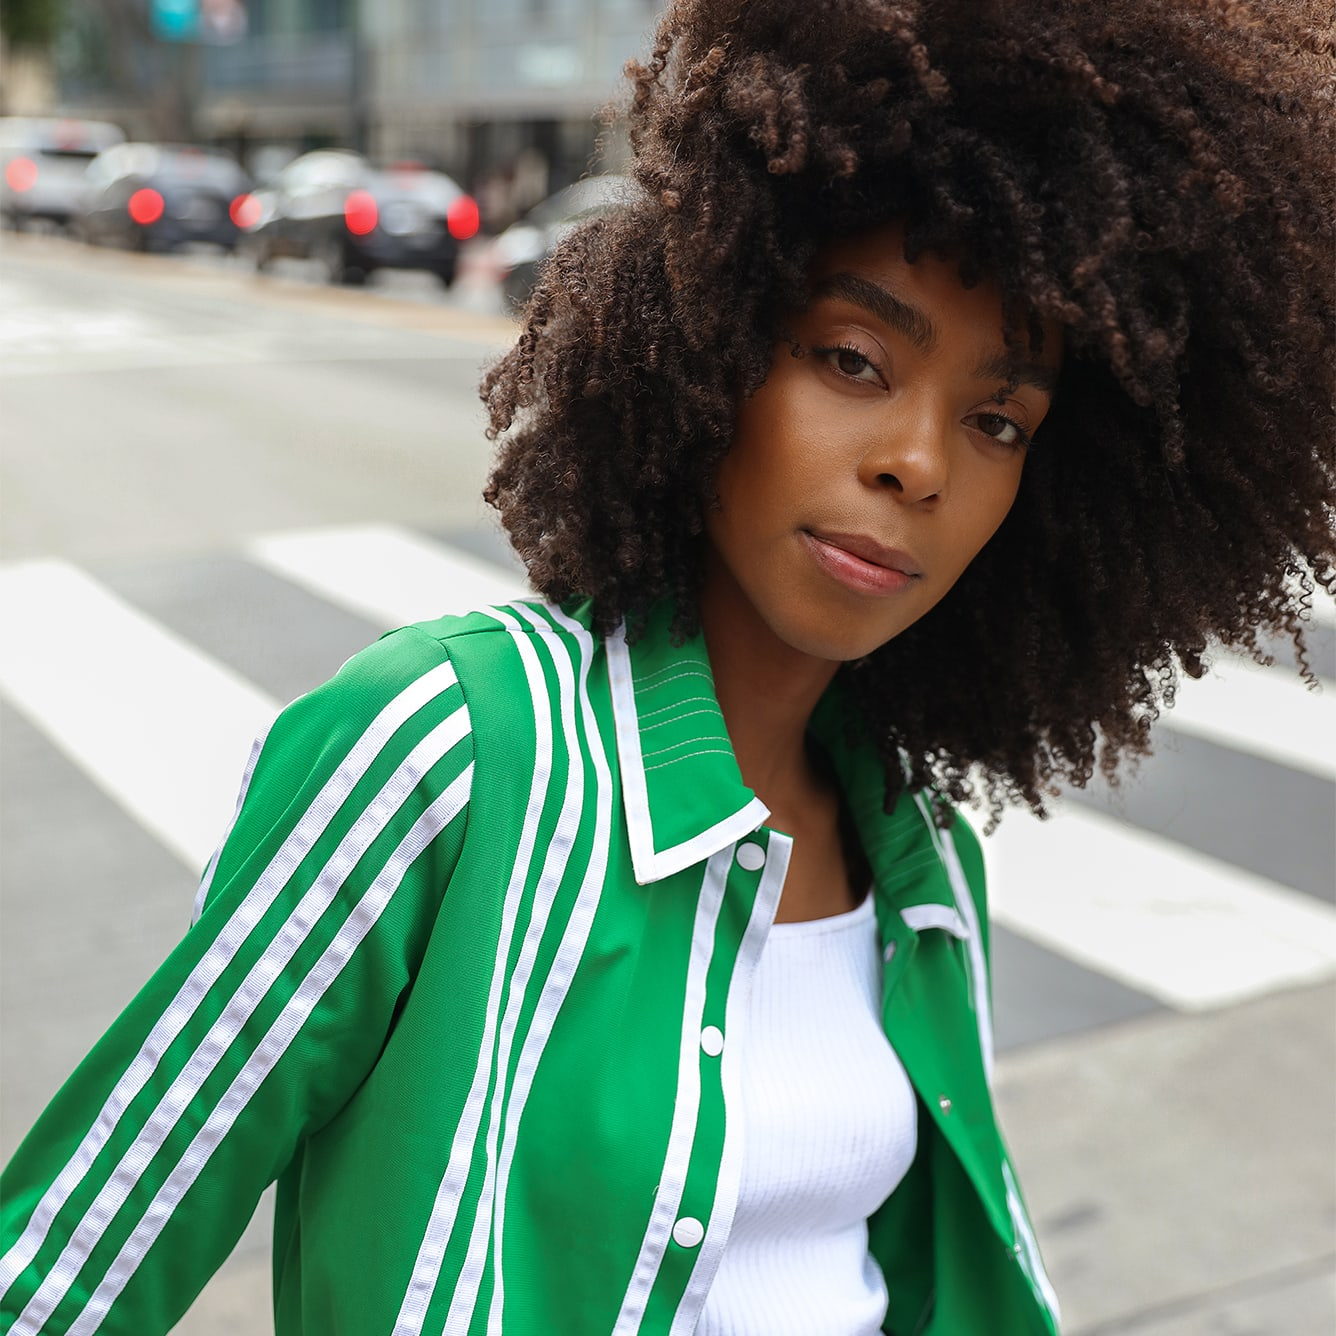 woman outside with super curly hair in a green track jacket